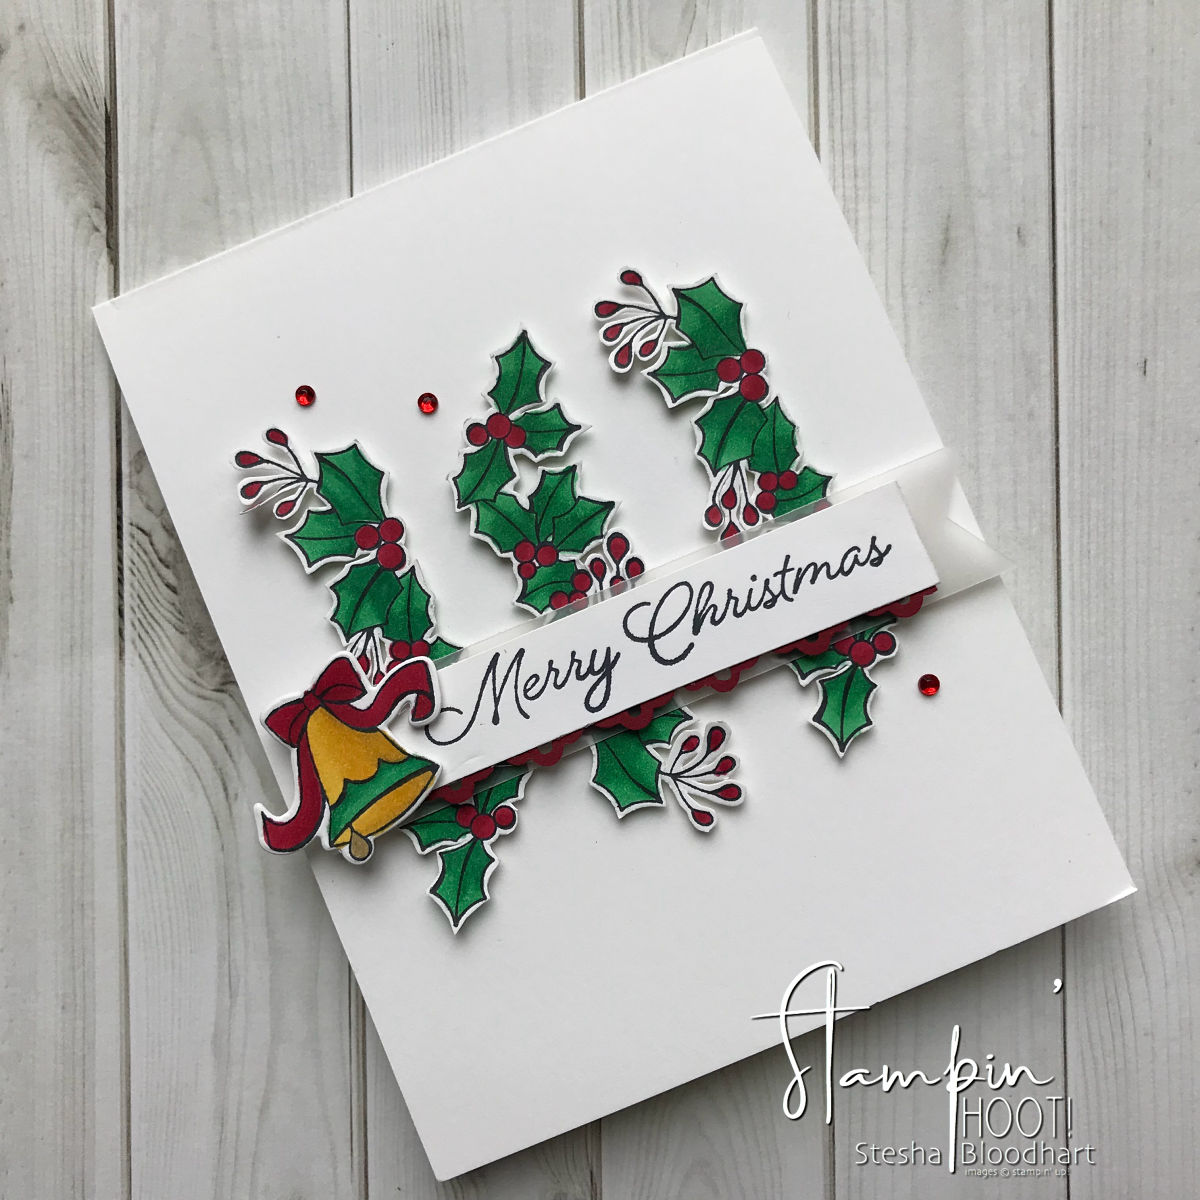 Blended Seasons by Stampin' Up! Handmade Christmas Card by Stesha Bloodhart, Stampin' Hoot! for #GDP150 Sketch Challenge #steshabloodhart #stampinhoot